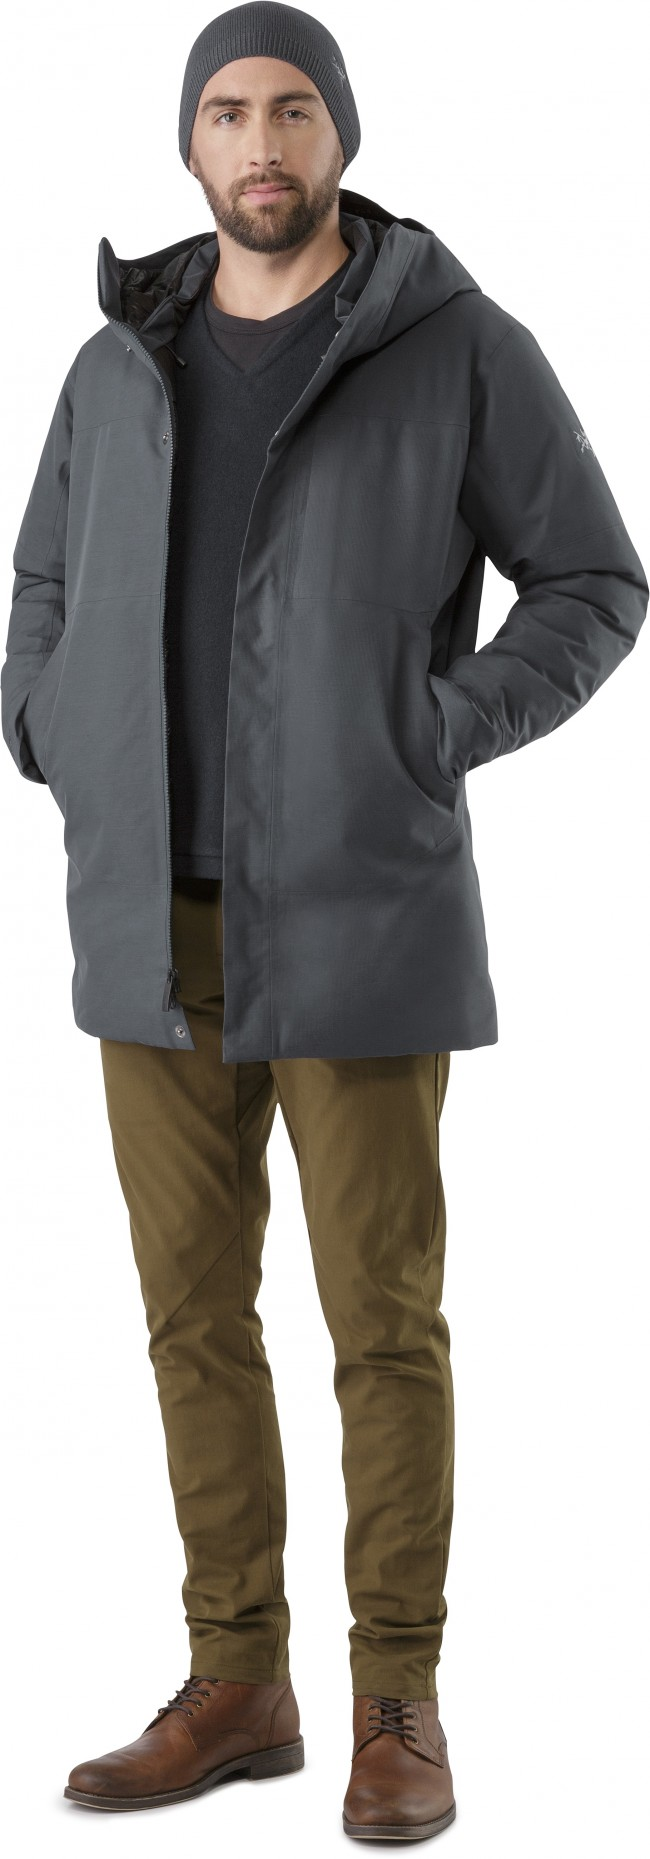 f3d159e0590 Arcteryx Therme Parka Men's Nighthawk - en